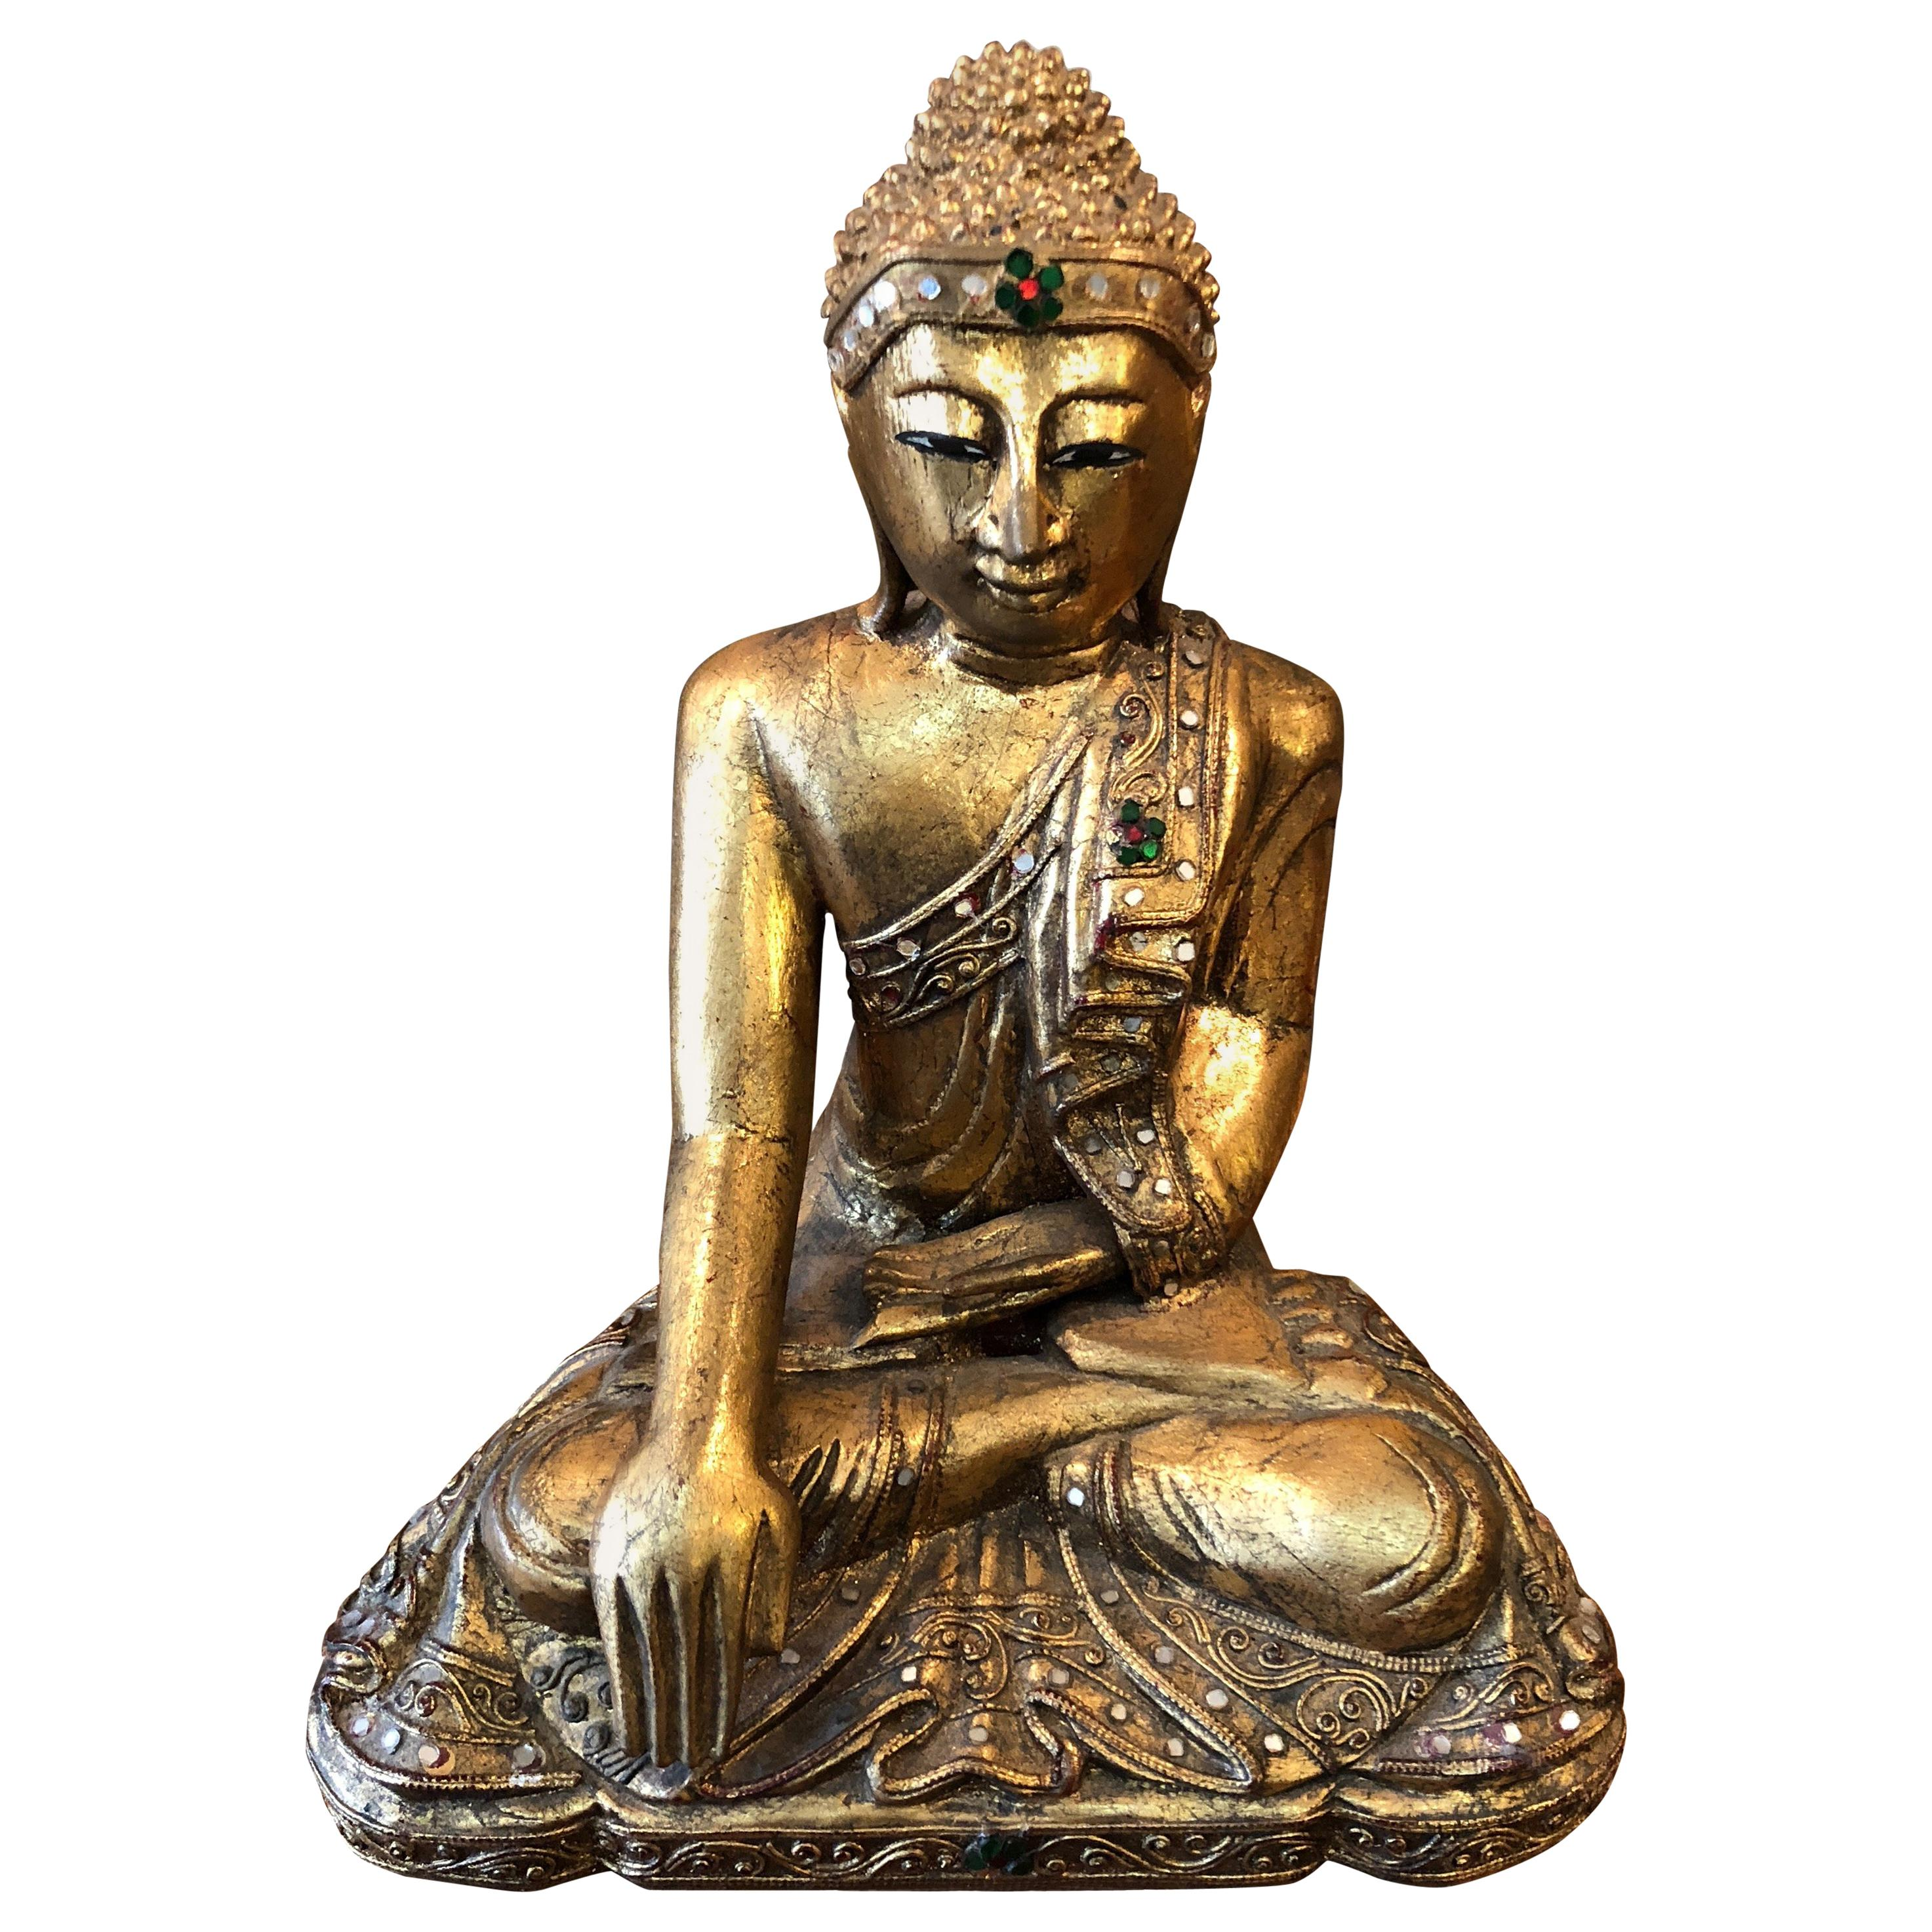 Glimmering Giltwood and Bejeweled Buddha Statue